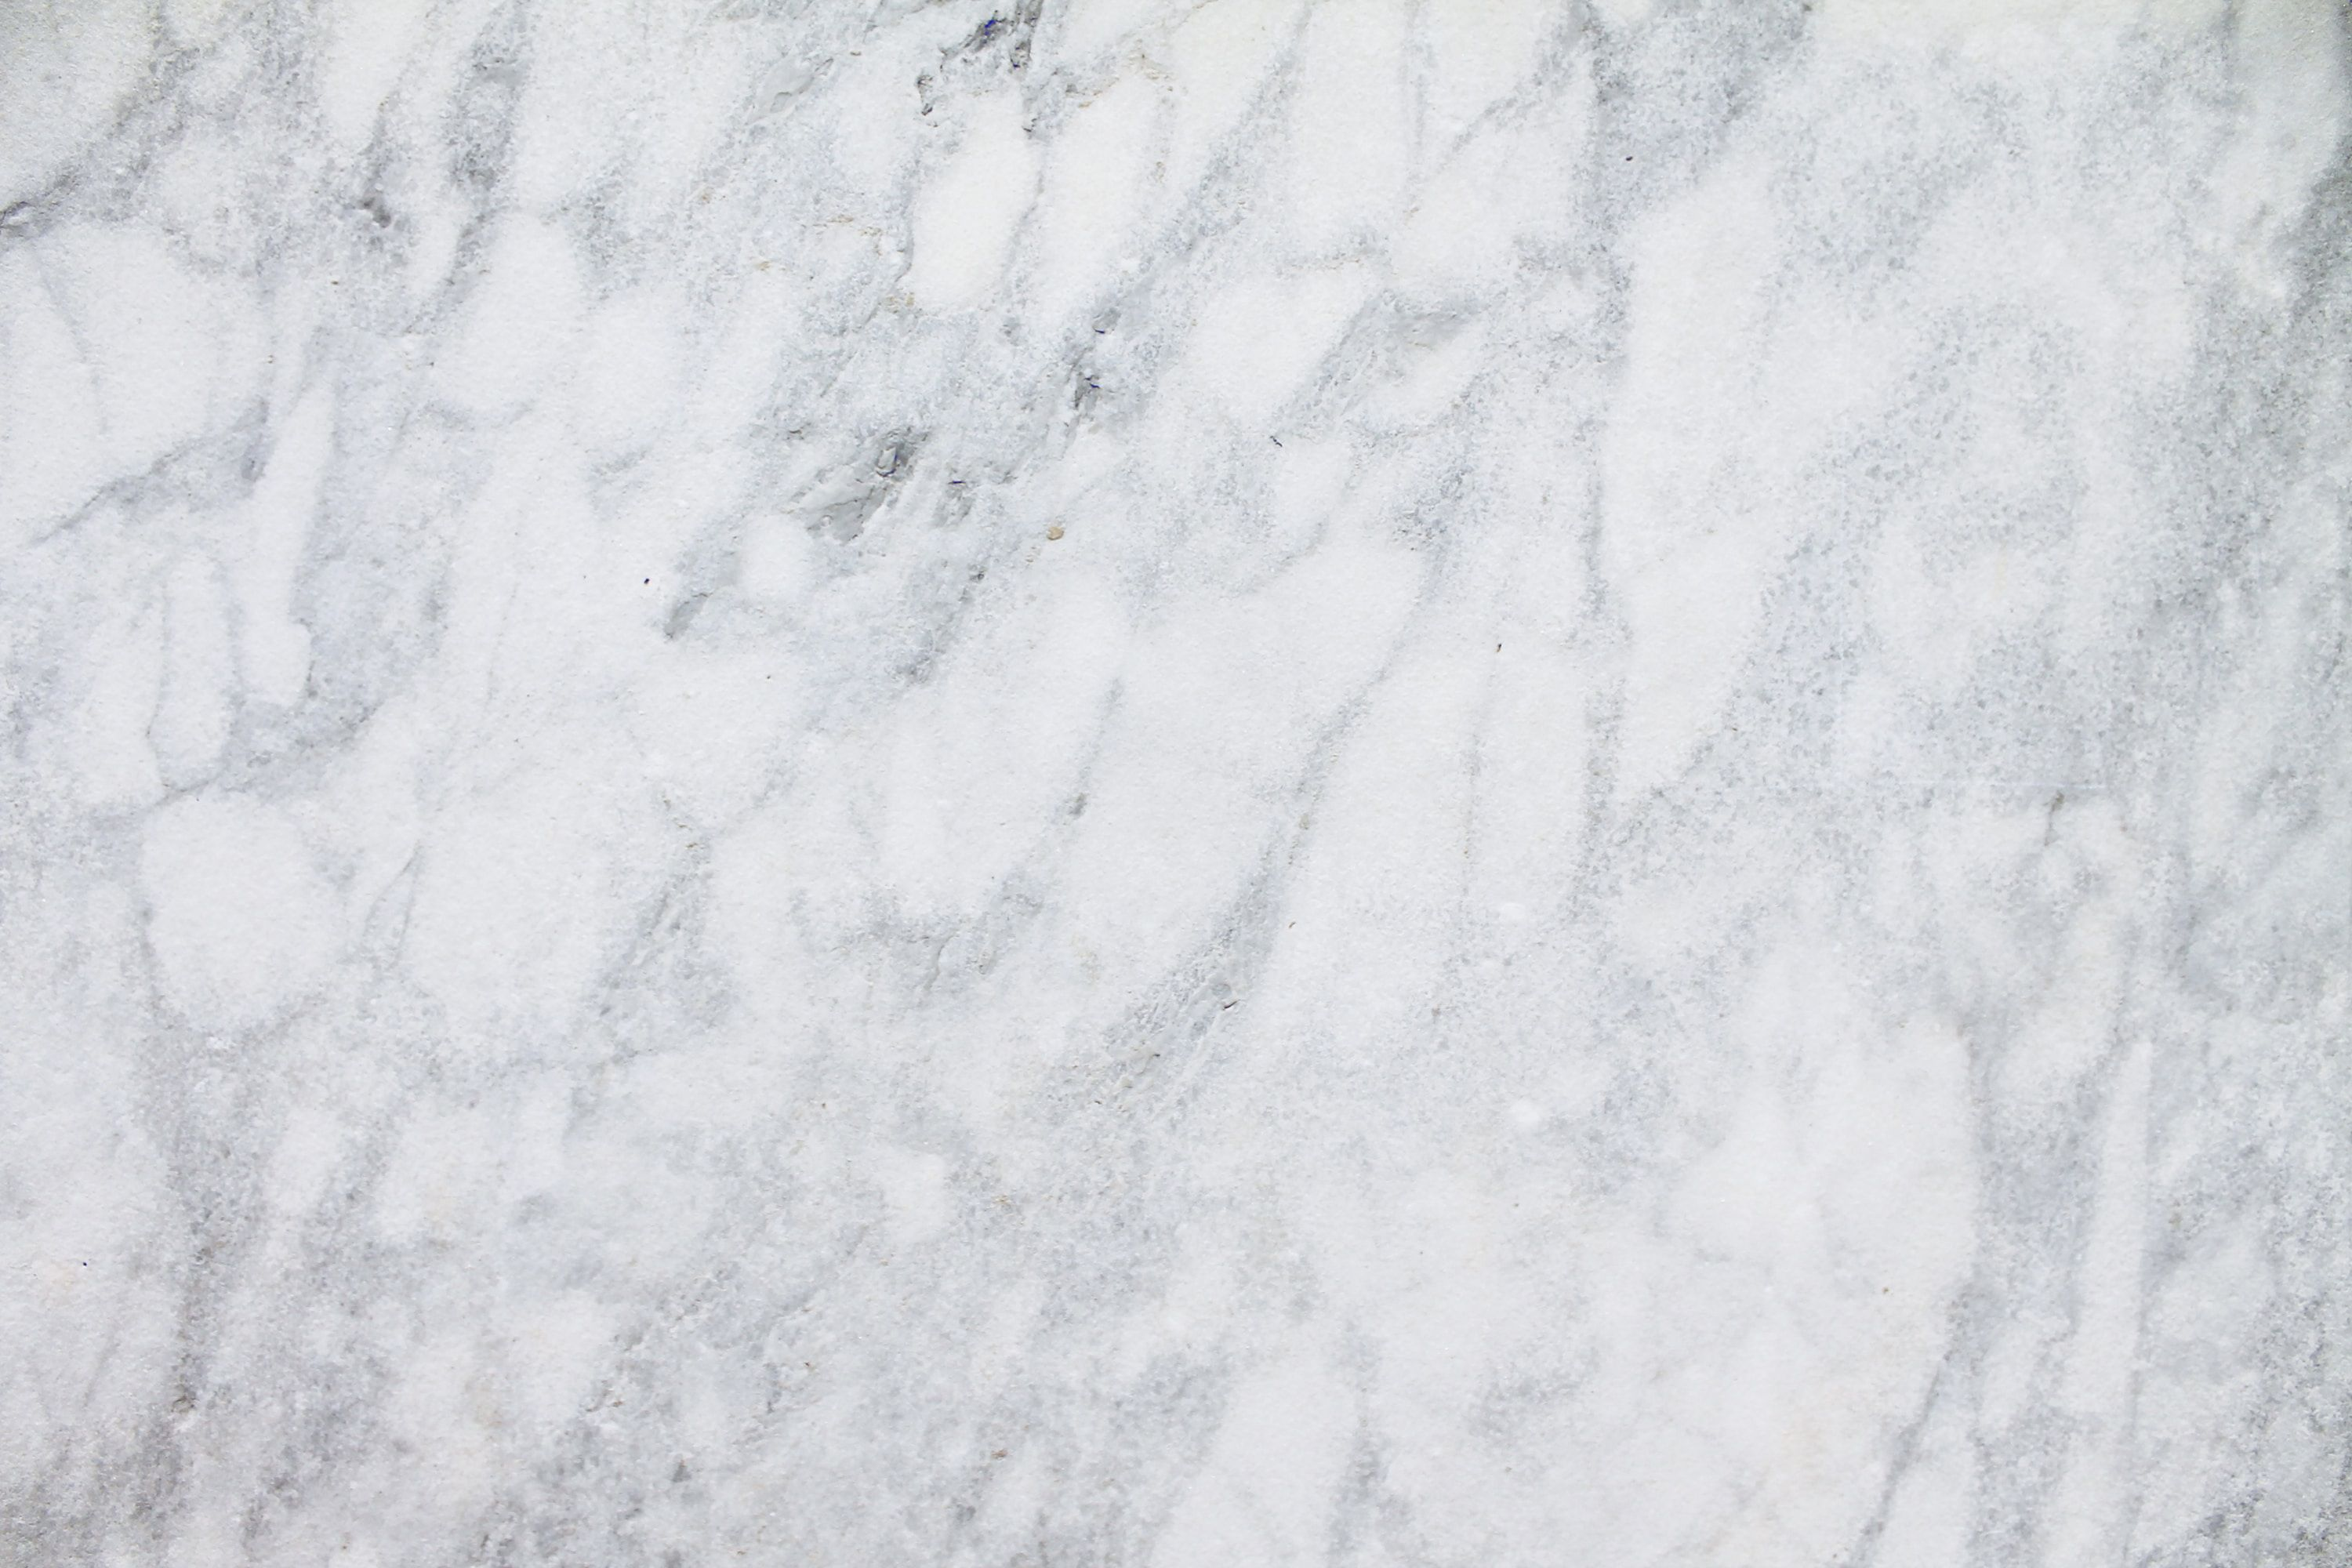 Marble 4k Wallpapers Top Free Marble 4k Backgrounds Wallpaperaccess If you're looking for the best 4k wallpaper marvel then wallpapertag is the place to be. marble 4k wallpapers top free marble